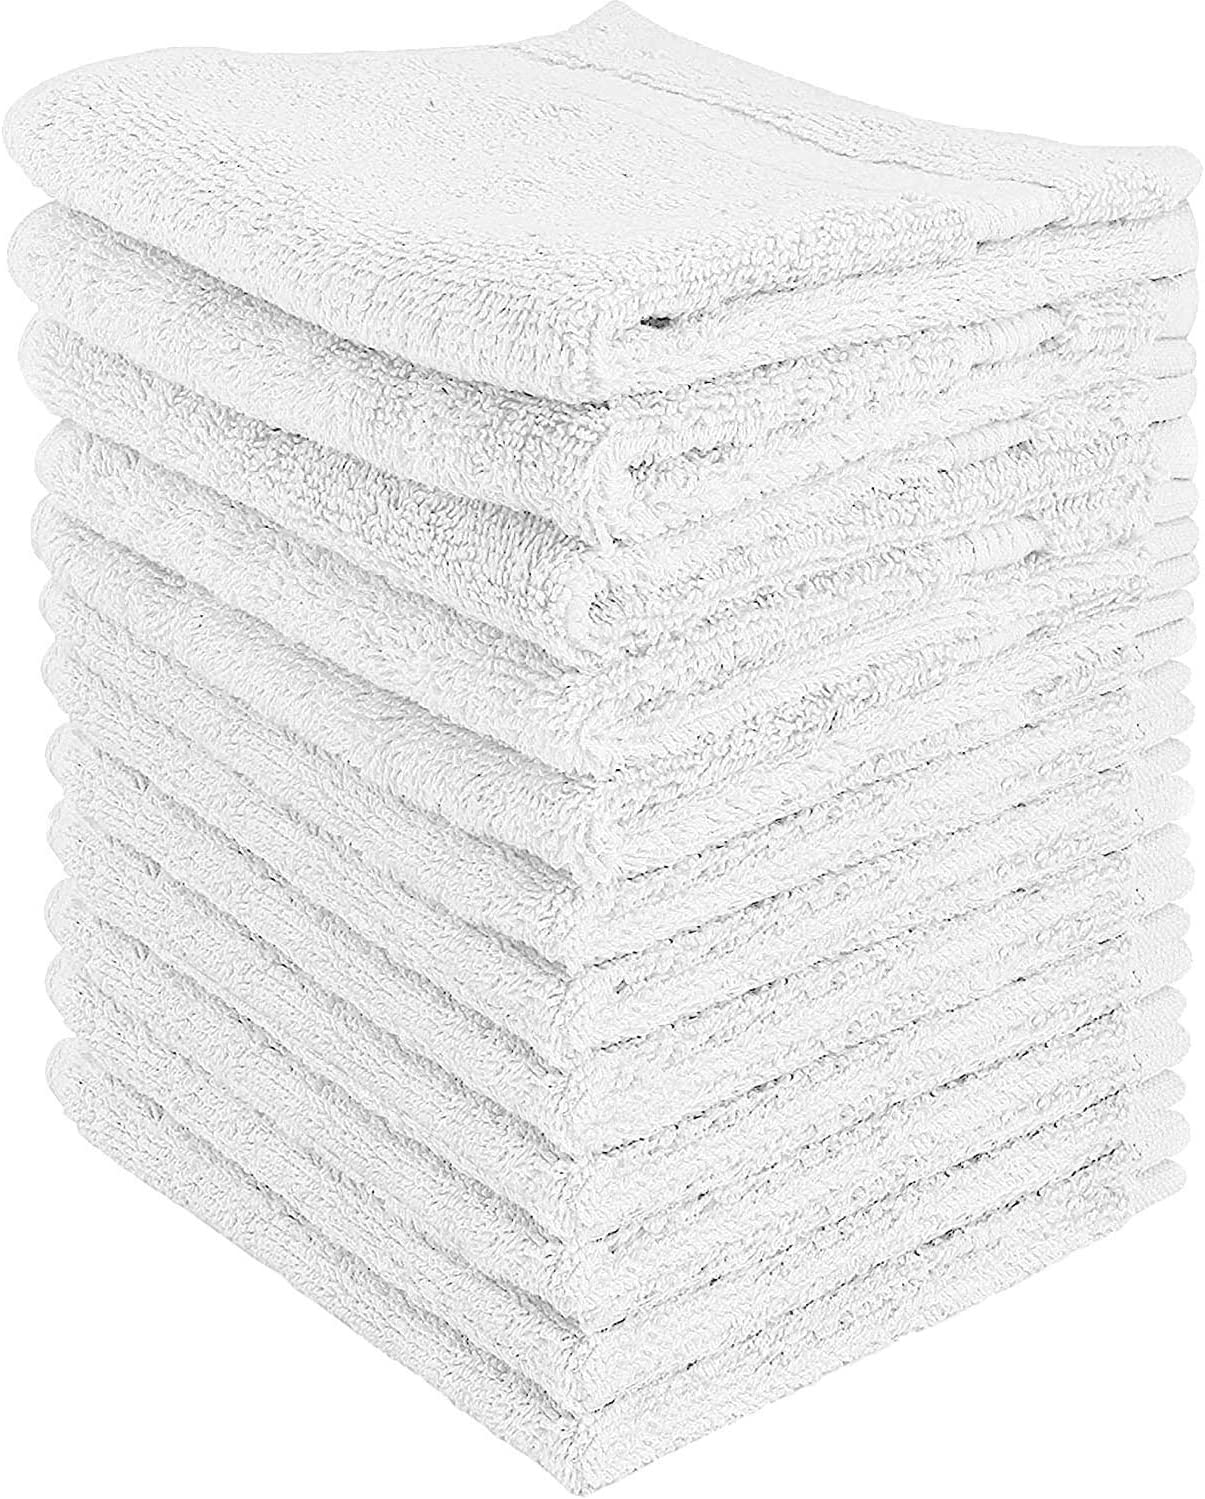 12-Pack White Washcloths - Premium Cotton Face Cloths with Double Stitched Side Hem - Multi-Purpose Wash Rags, Bathroom Towel, Kitchen Towel, and Gym Towel - Machine Washable: Kitchen & Dining